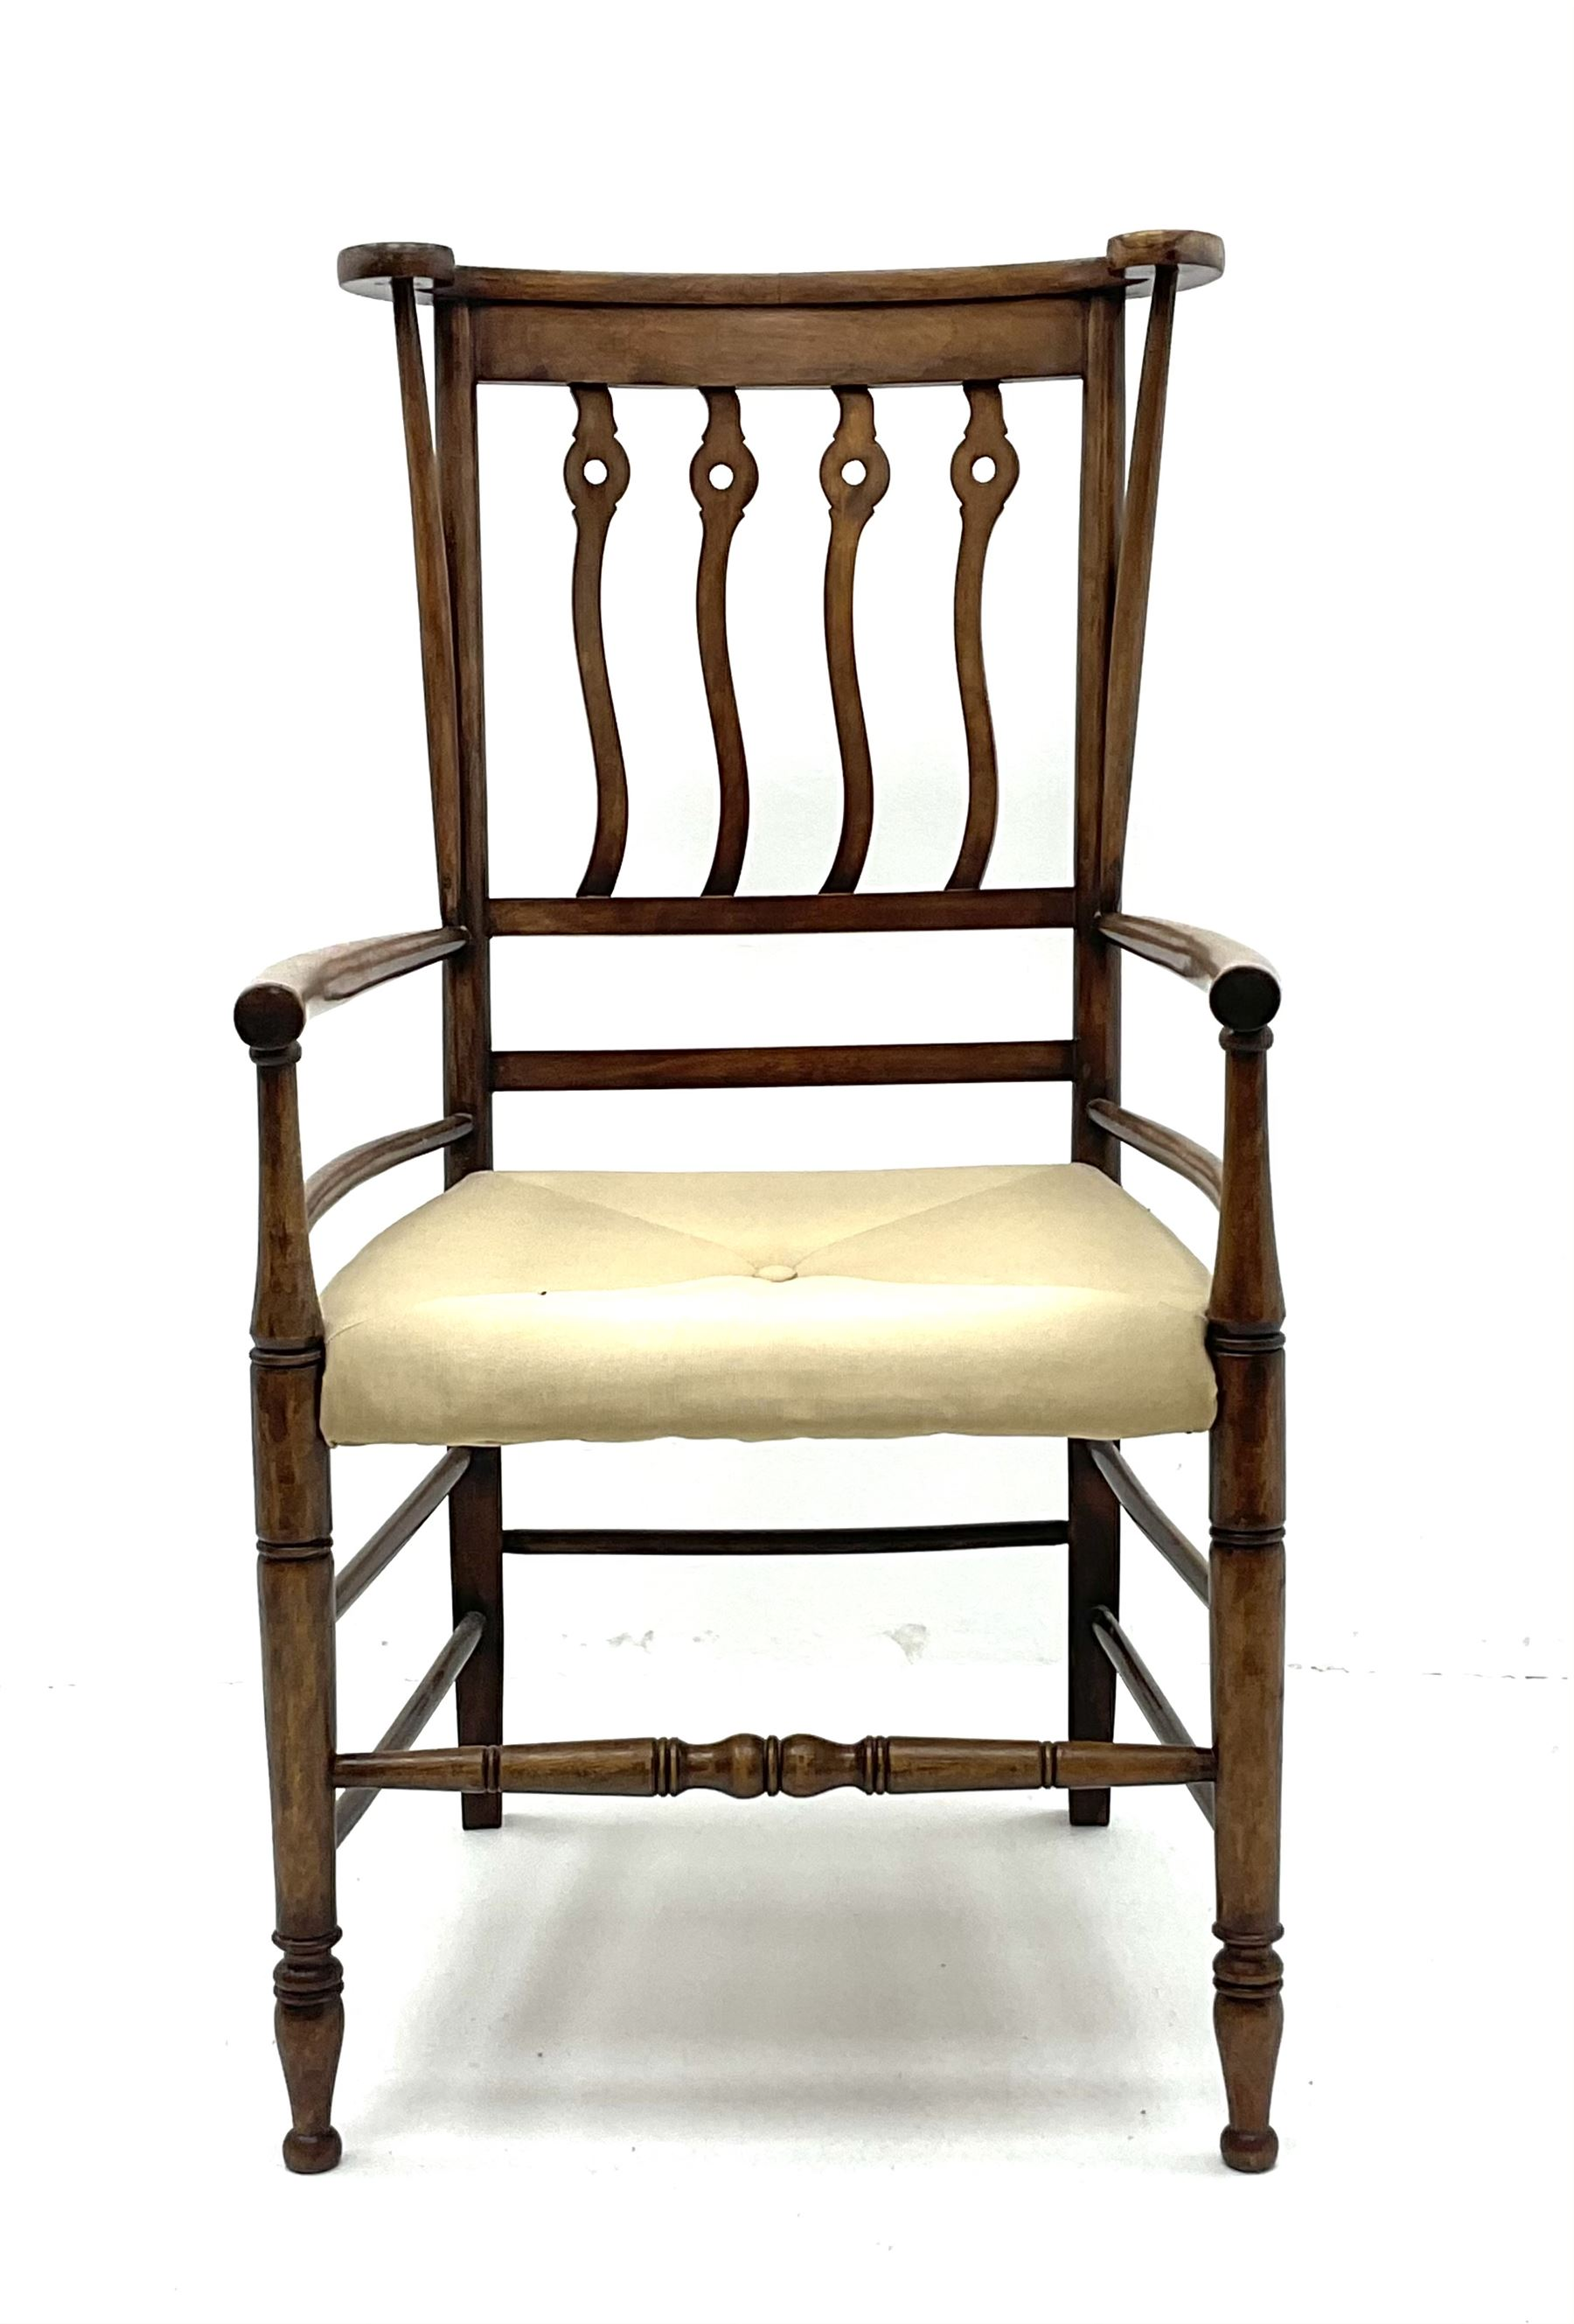 Early 20th century Arts and Crafts style fruitwood elbow chair